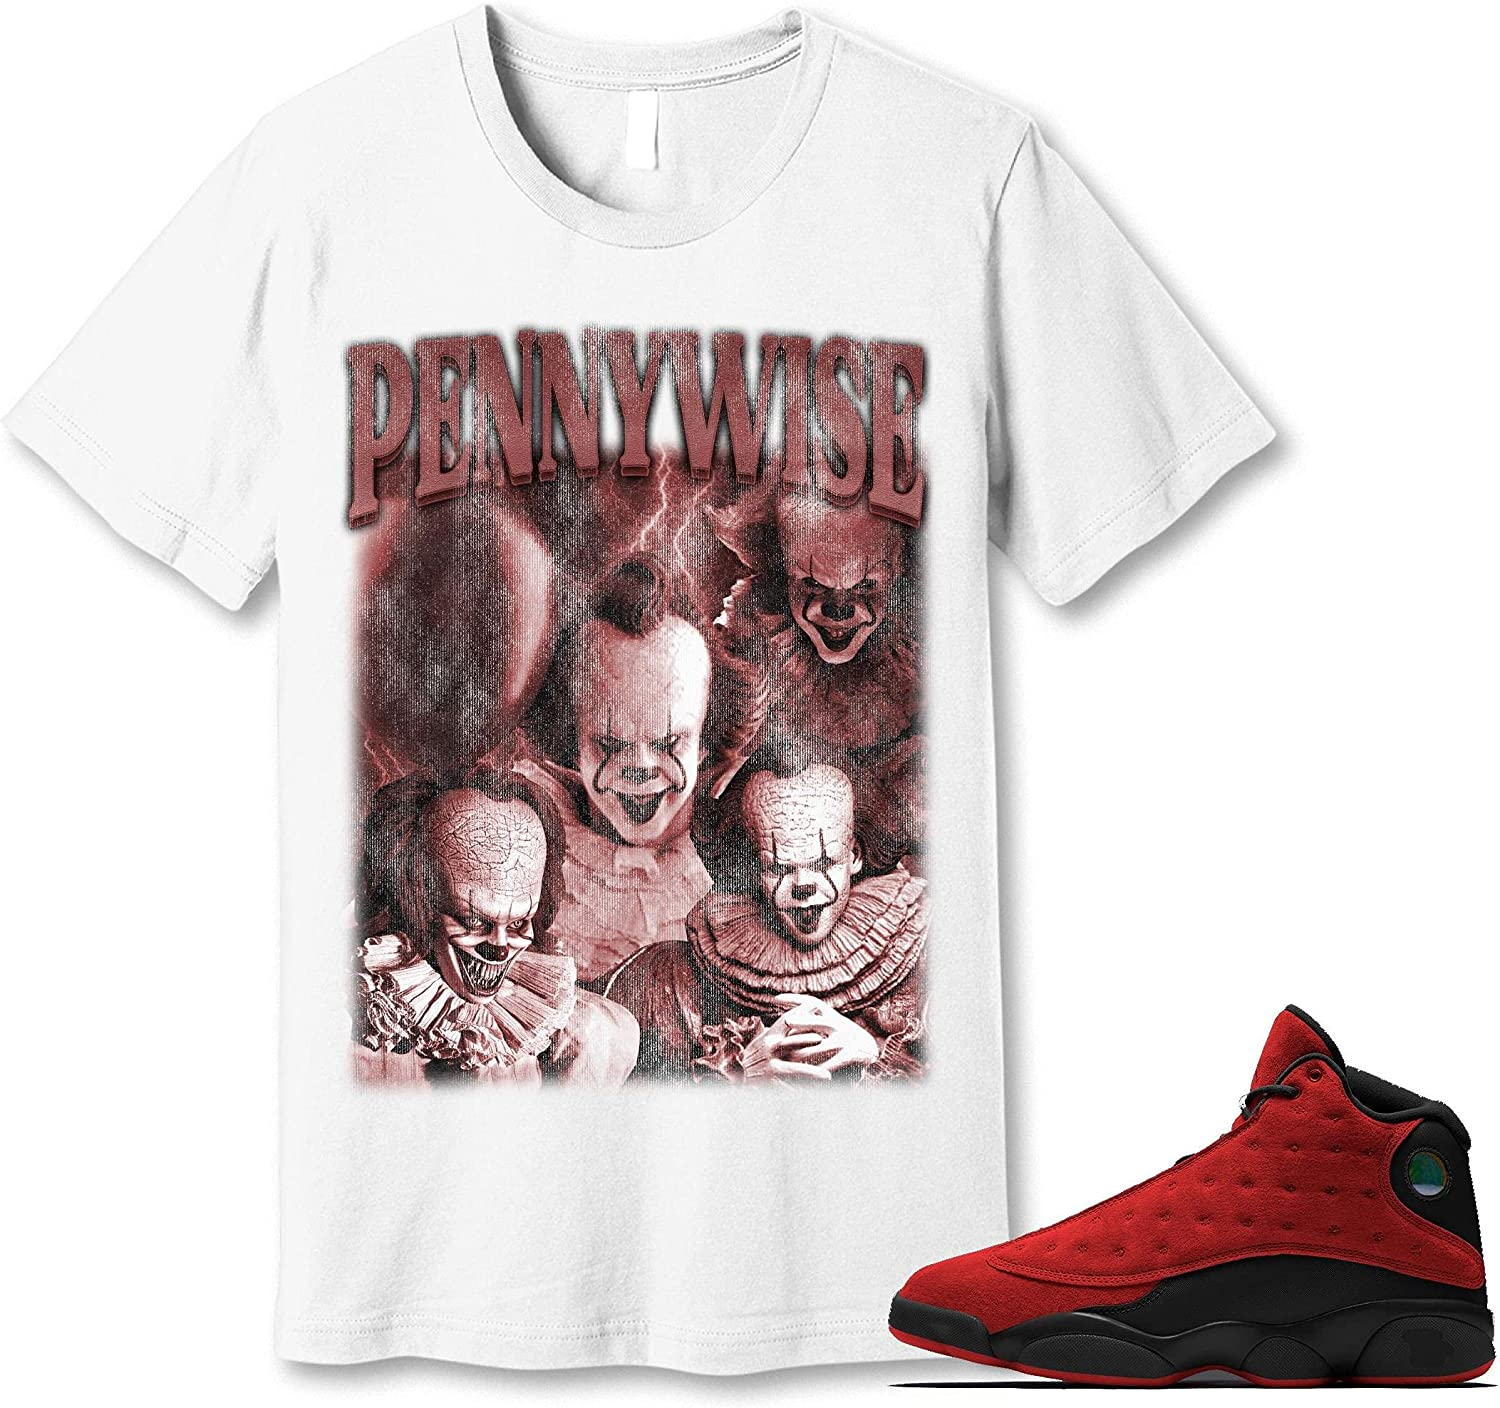 #Pennywise T-Shirt to Match All Regular discount items free shipping Jordan Bred 13 Snkrs Sneaker Reverse